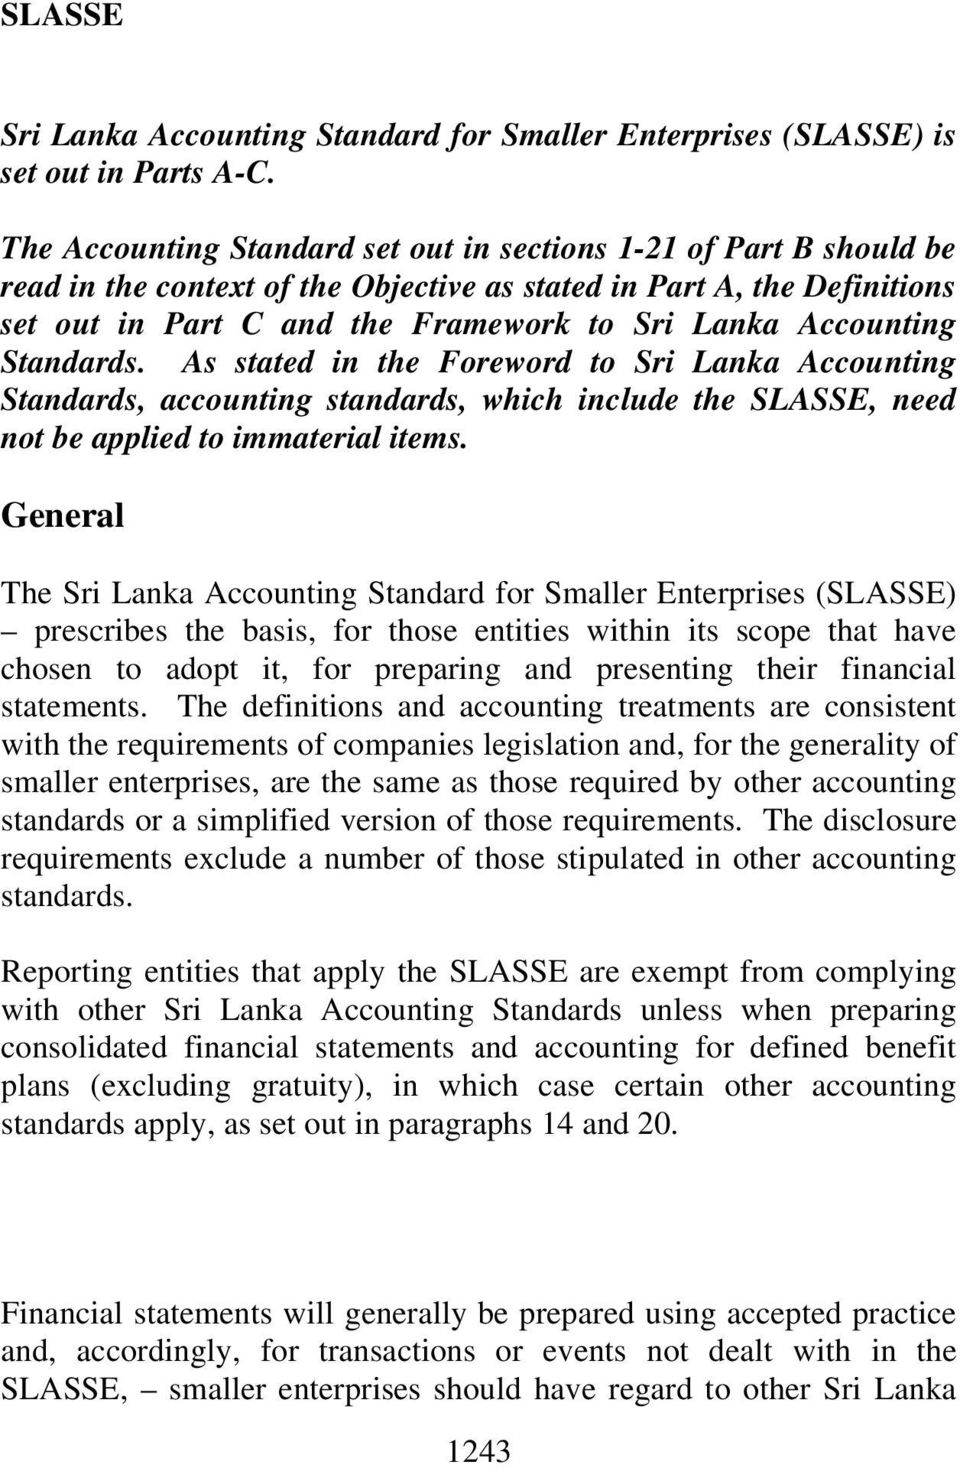 Accounting Standards. As stated in the Foreword to Sri Lanka Accounting Standards, accounting standards, which include the SLASSE, need not be applied to immaterial items.